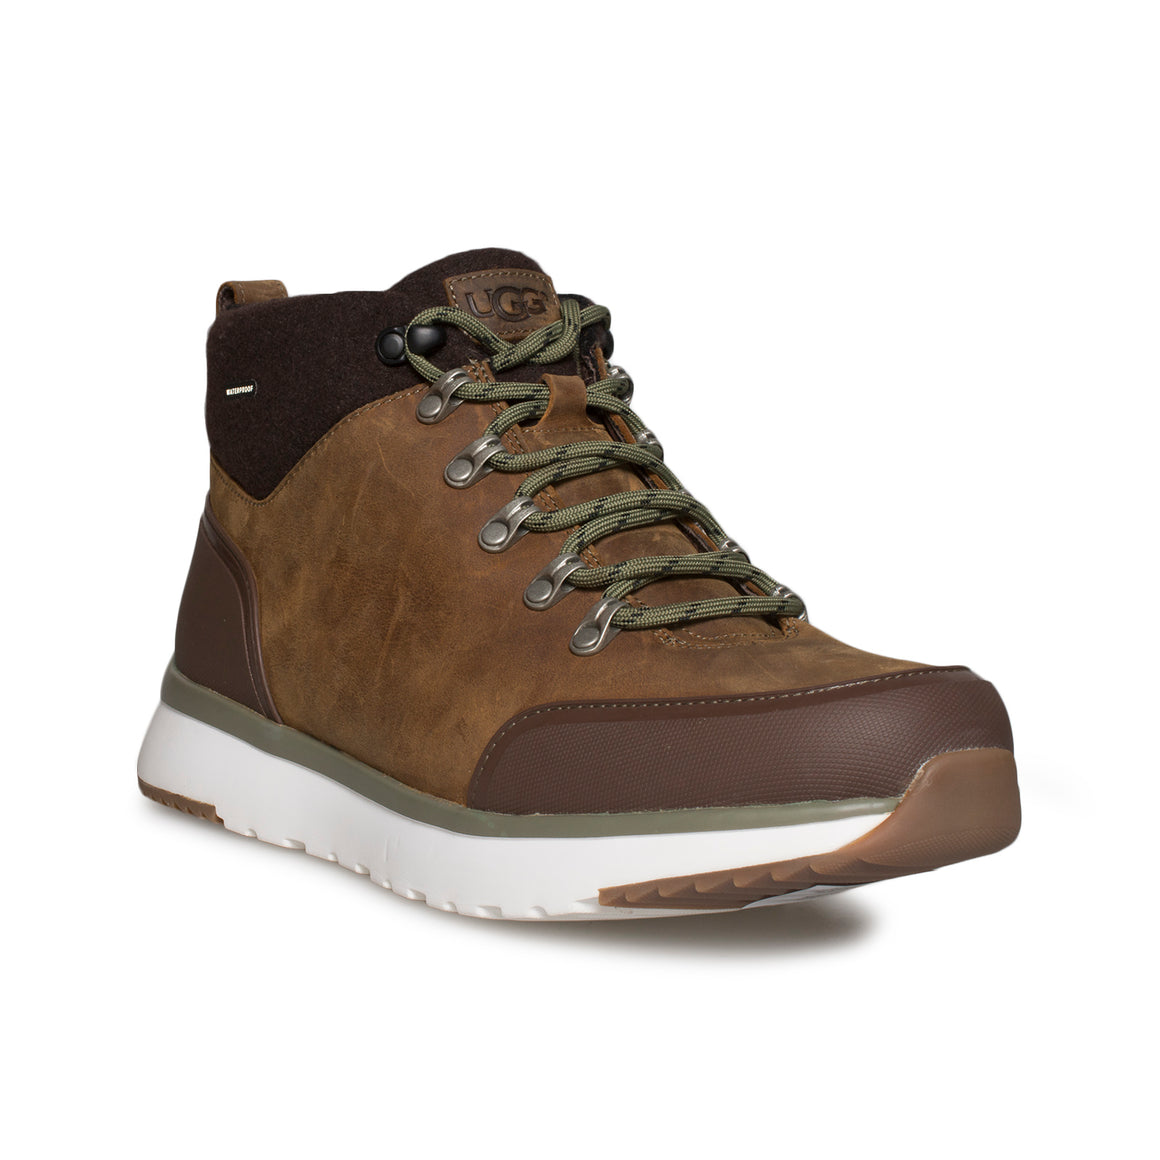 UGG Olivert Grizzly Boots - Men's